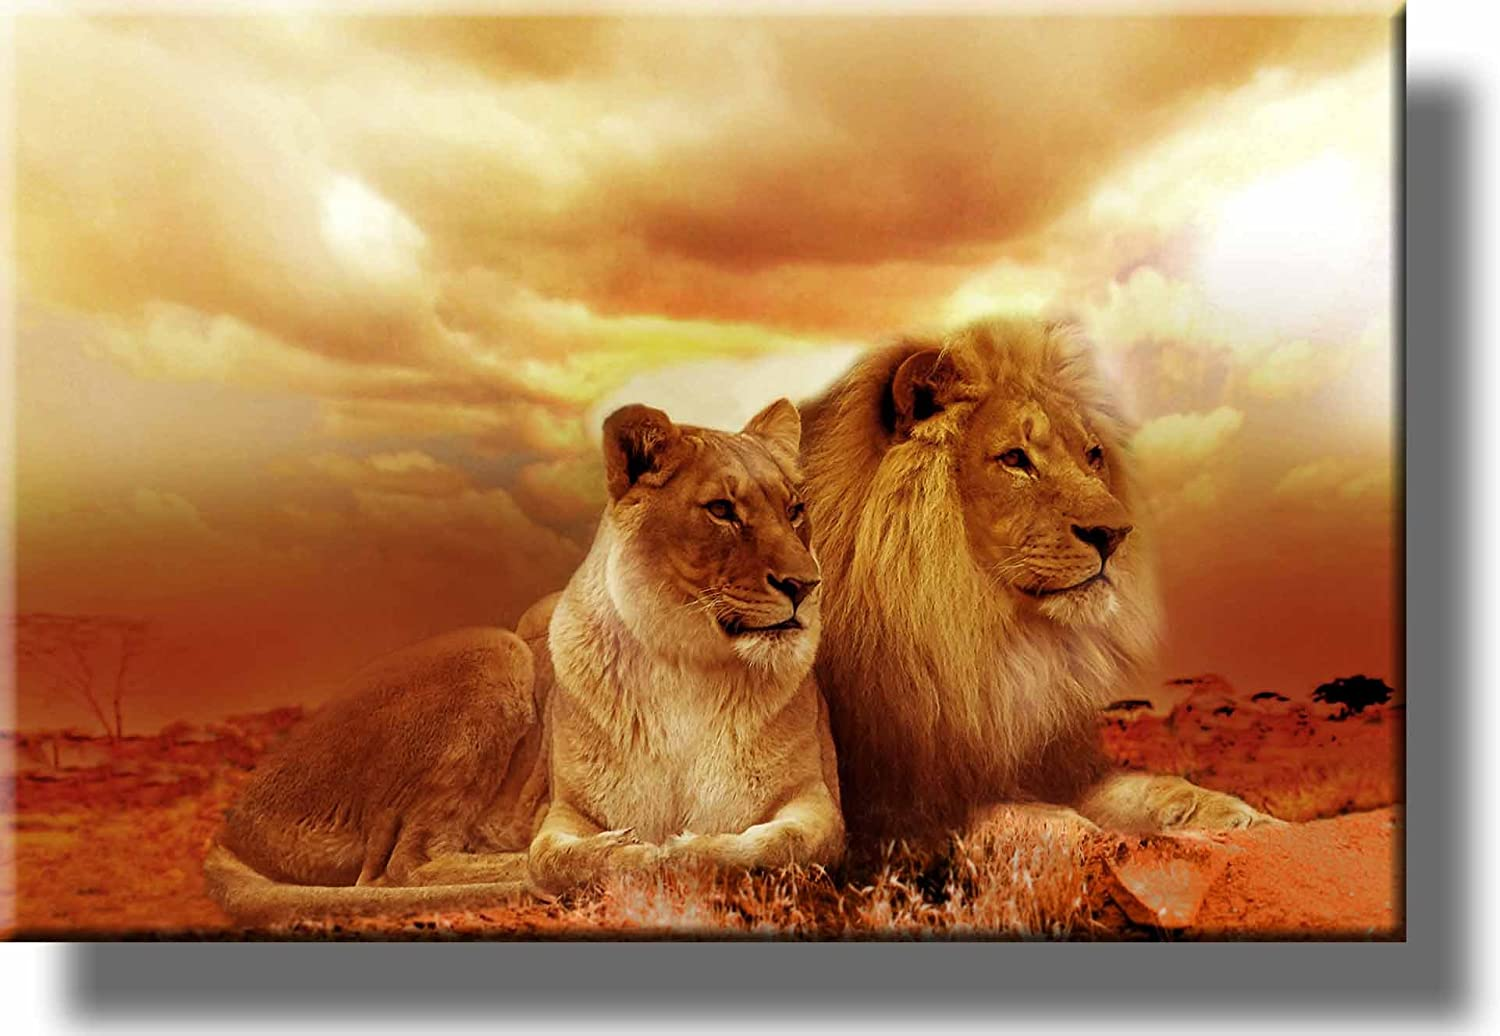 African Lion and Lioness Picture on Stretched Canvas Wall Art Décor Framed Ready to Hang!